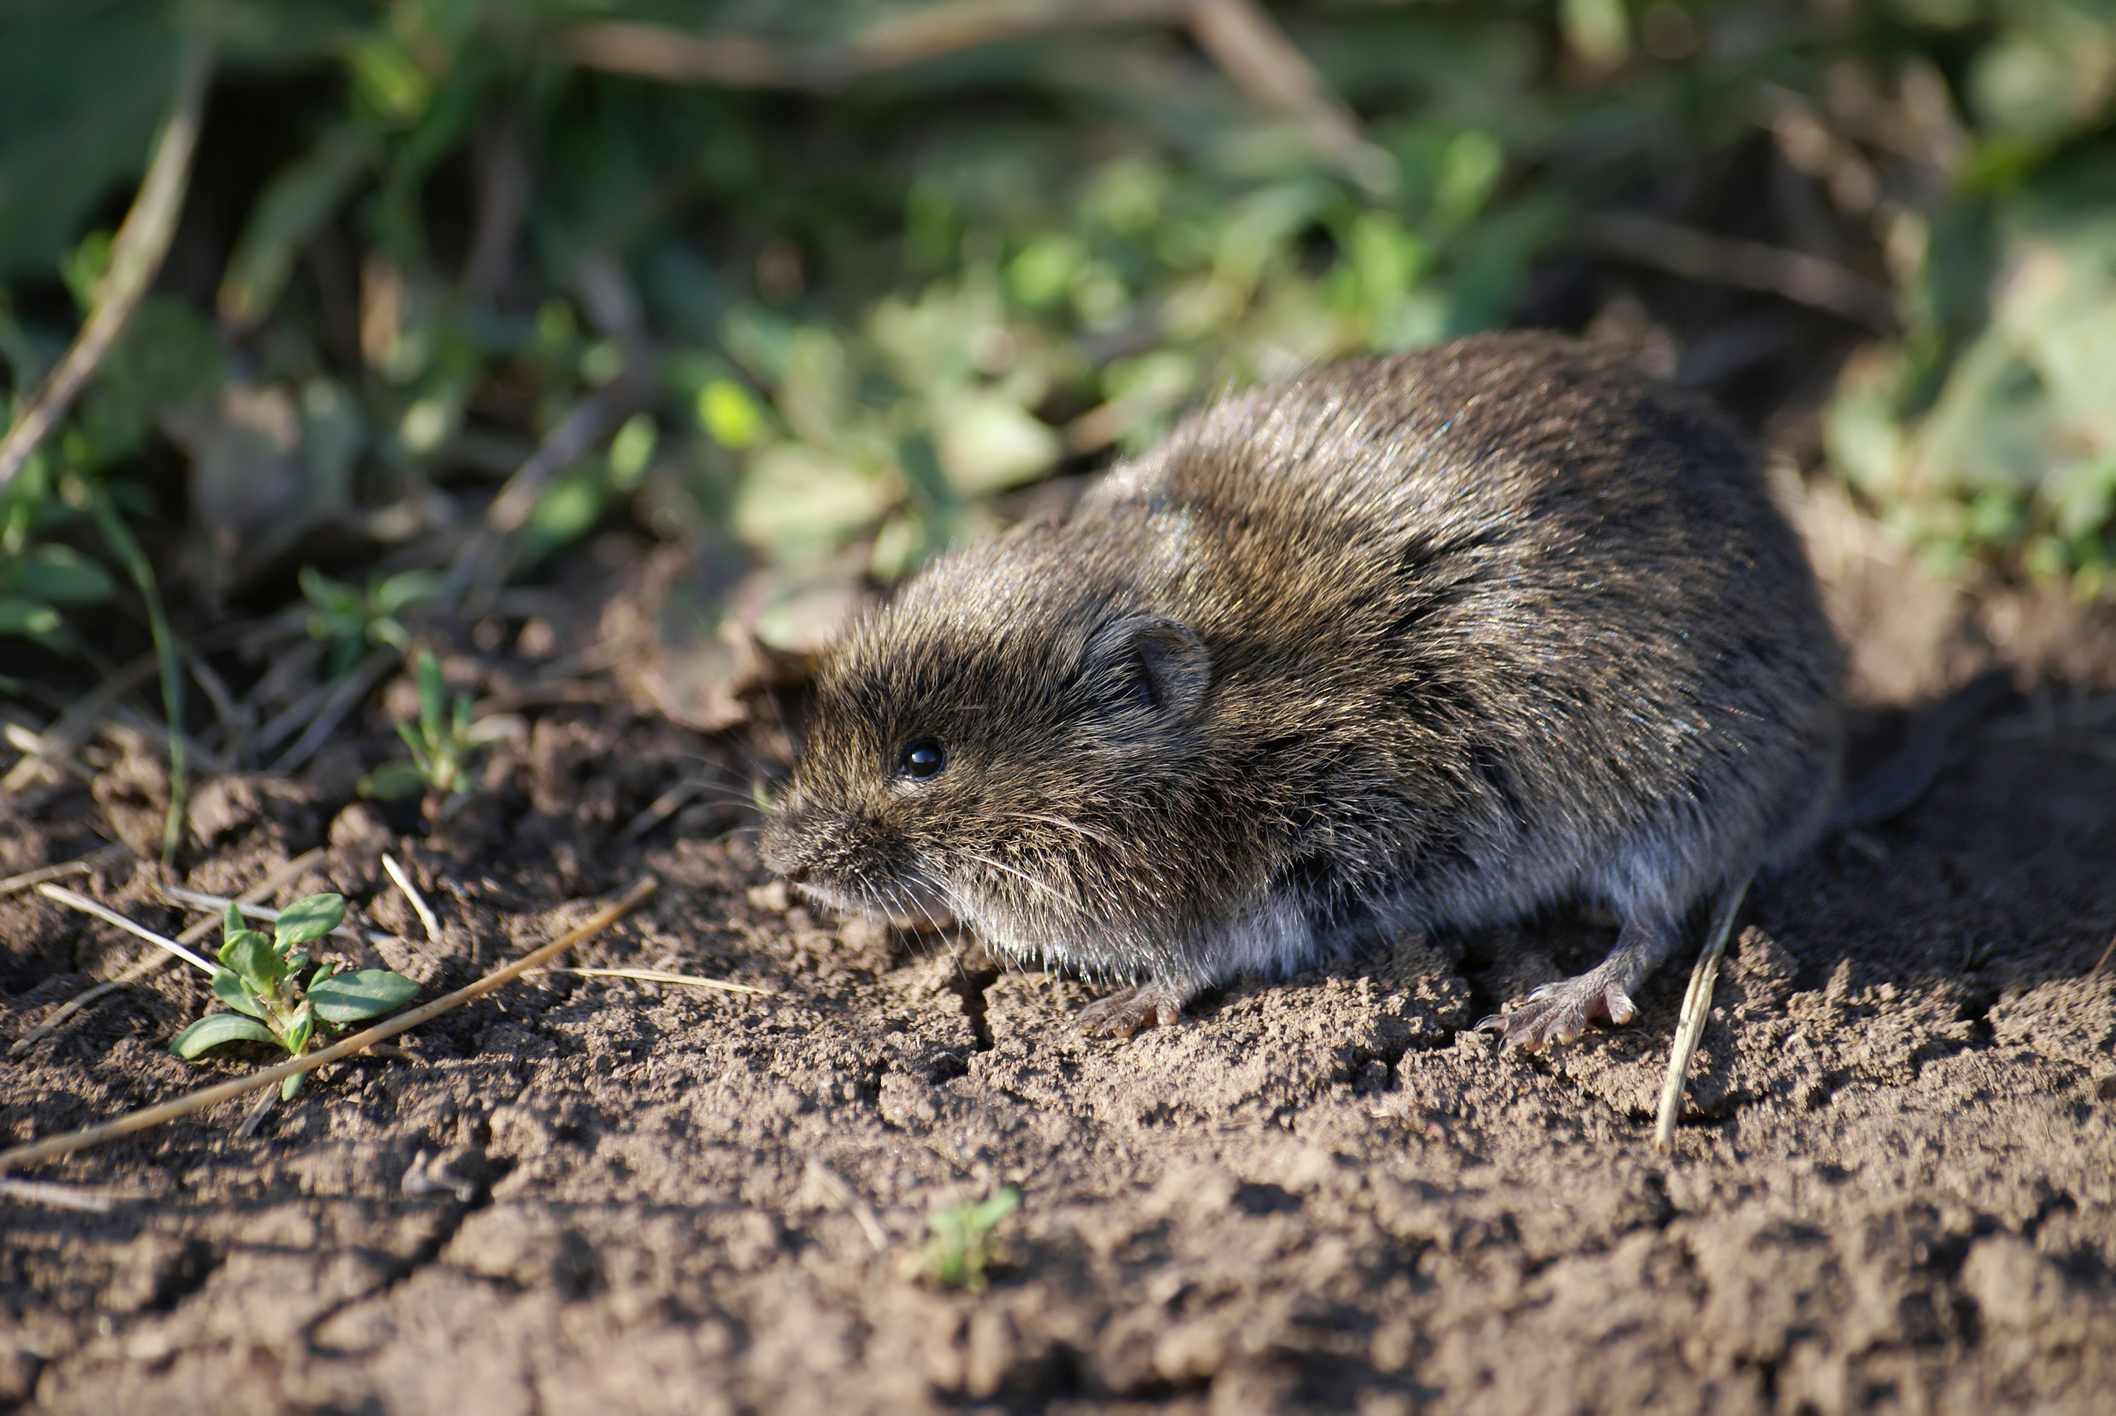 Vole searching for food